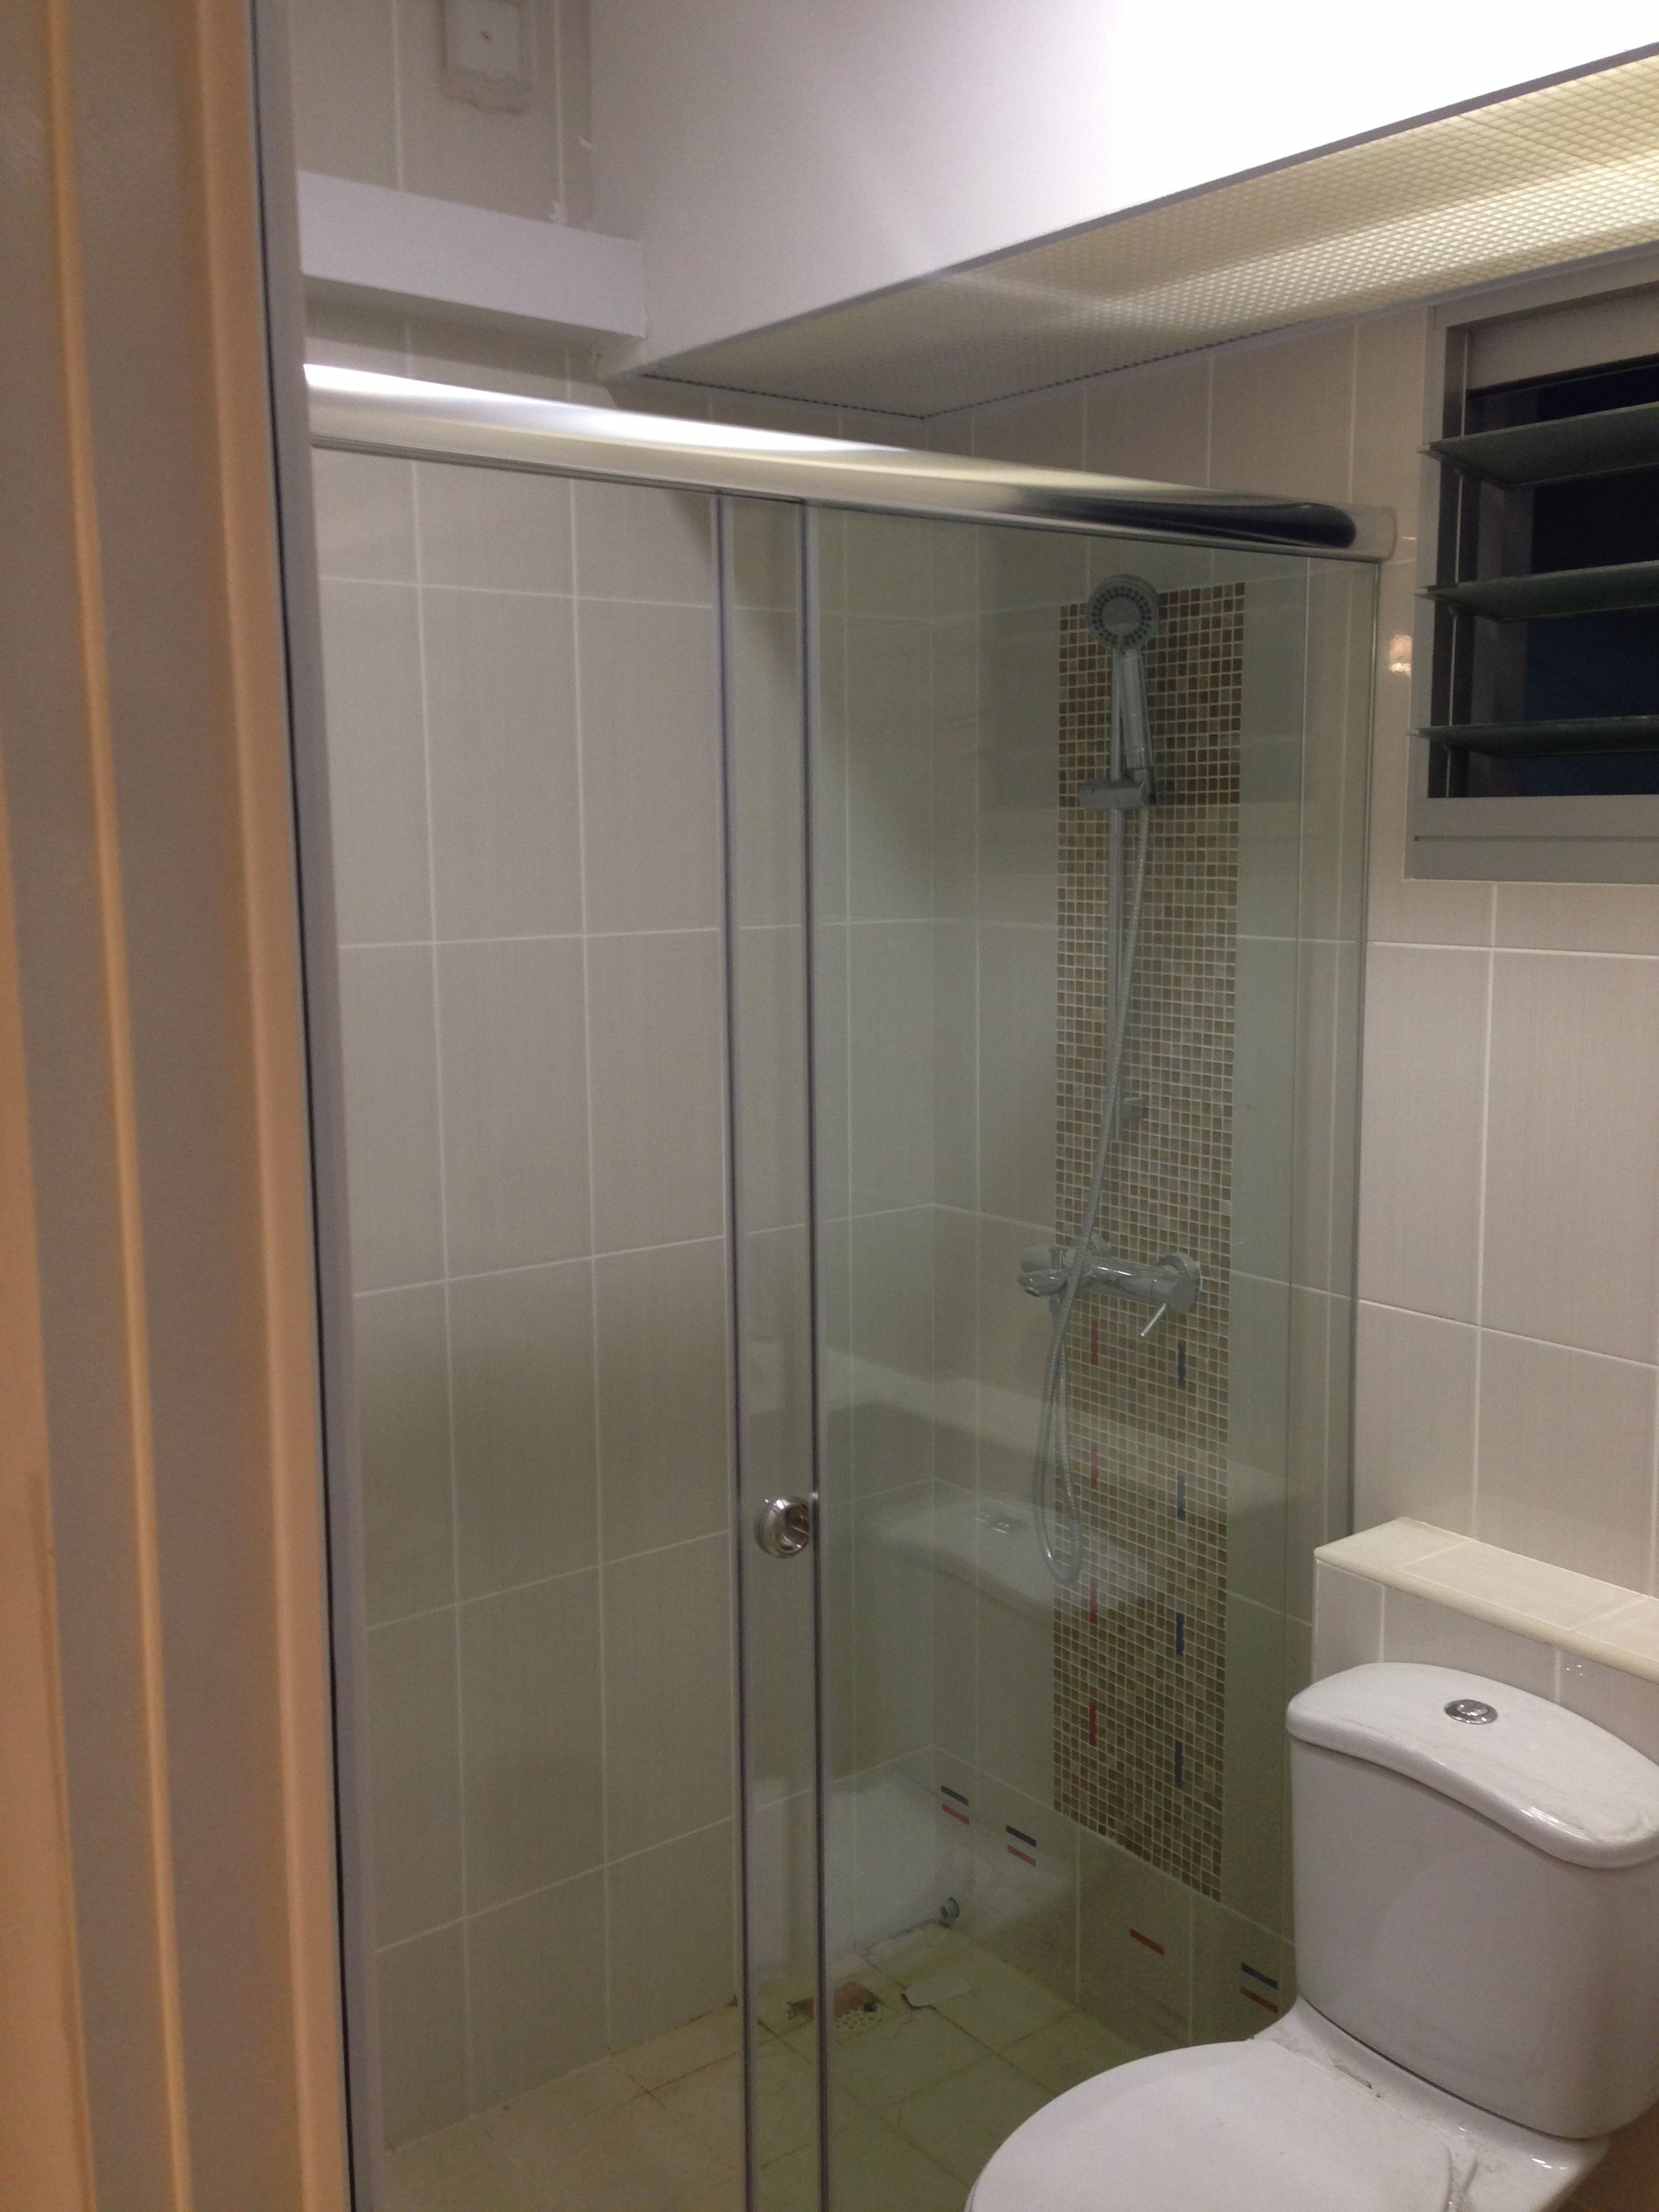 Sliding shower screen - Sliding Shower Screen Intradesign